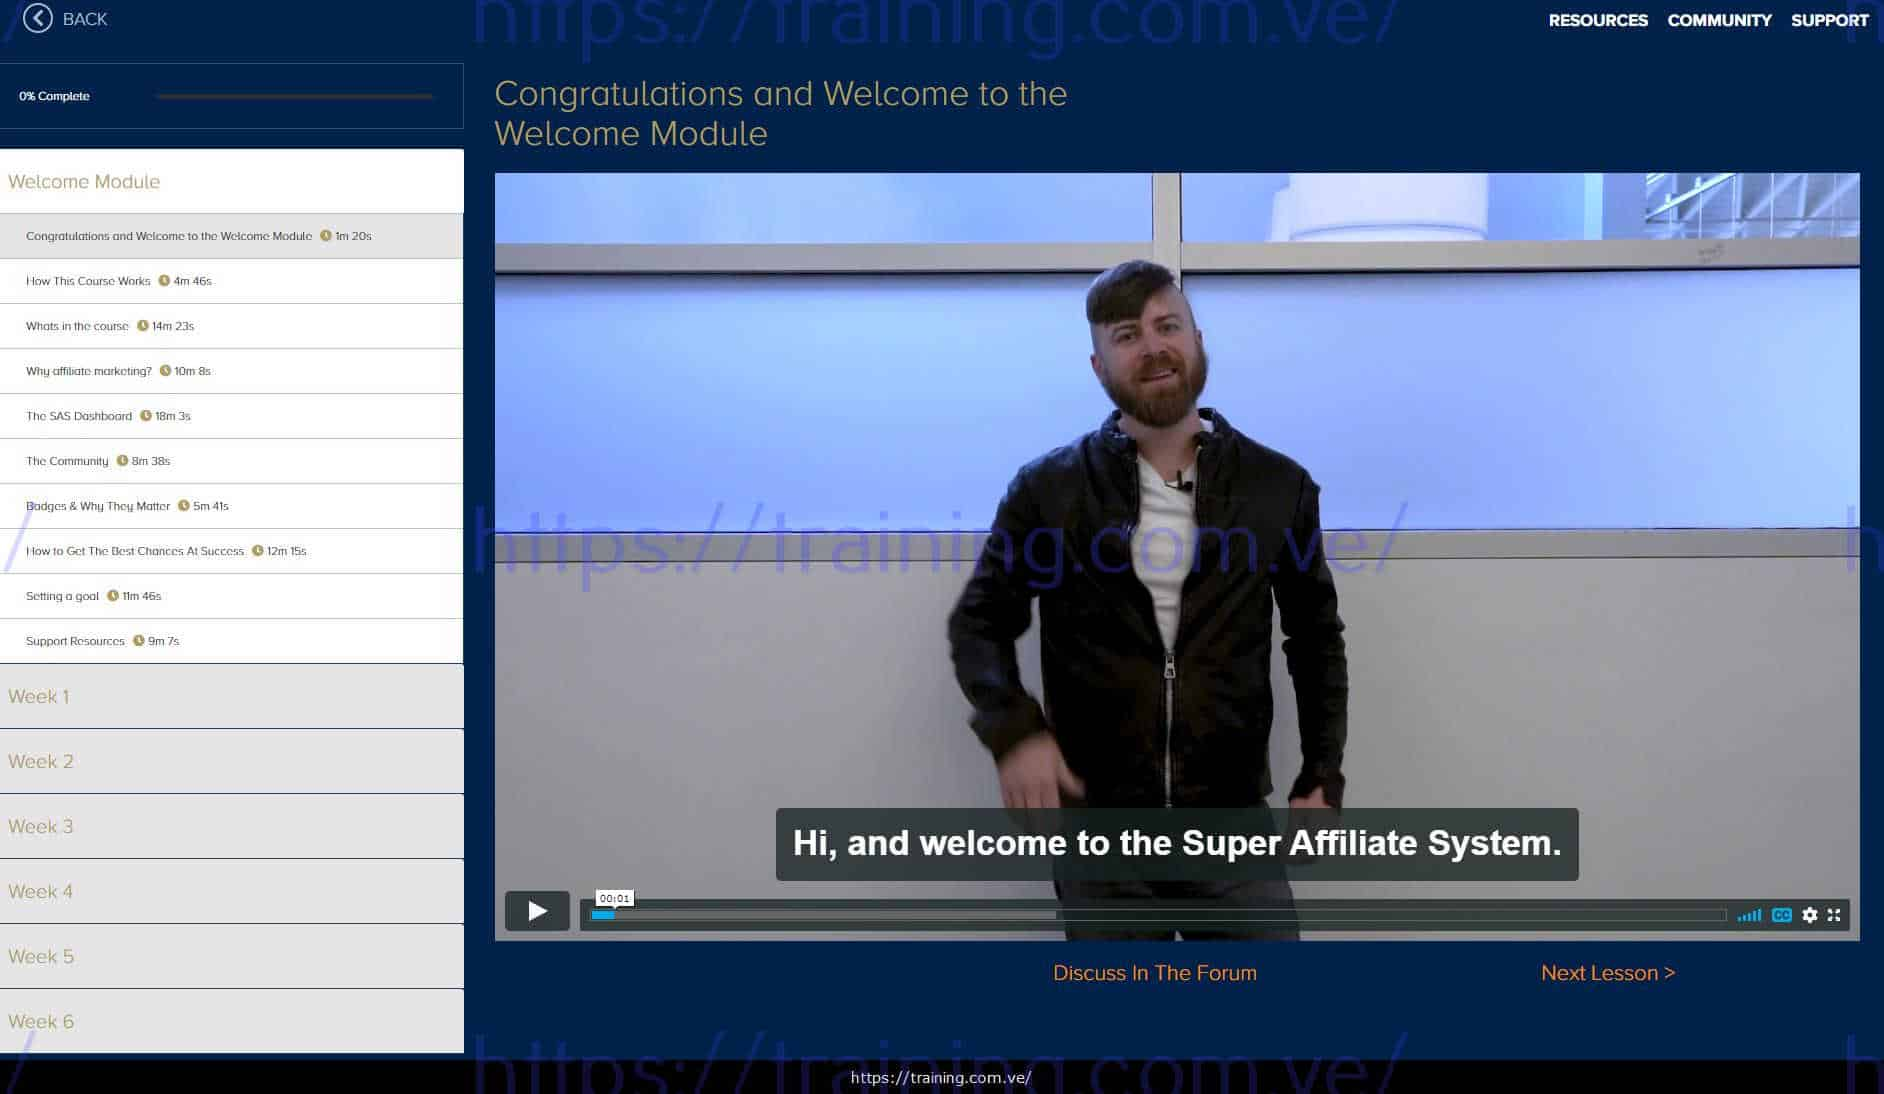 Super Affiliate System 3.0 by John Crestani Download